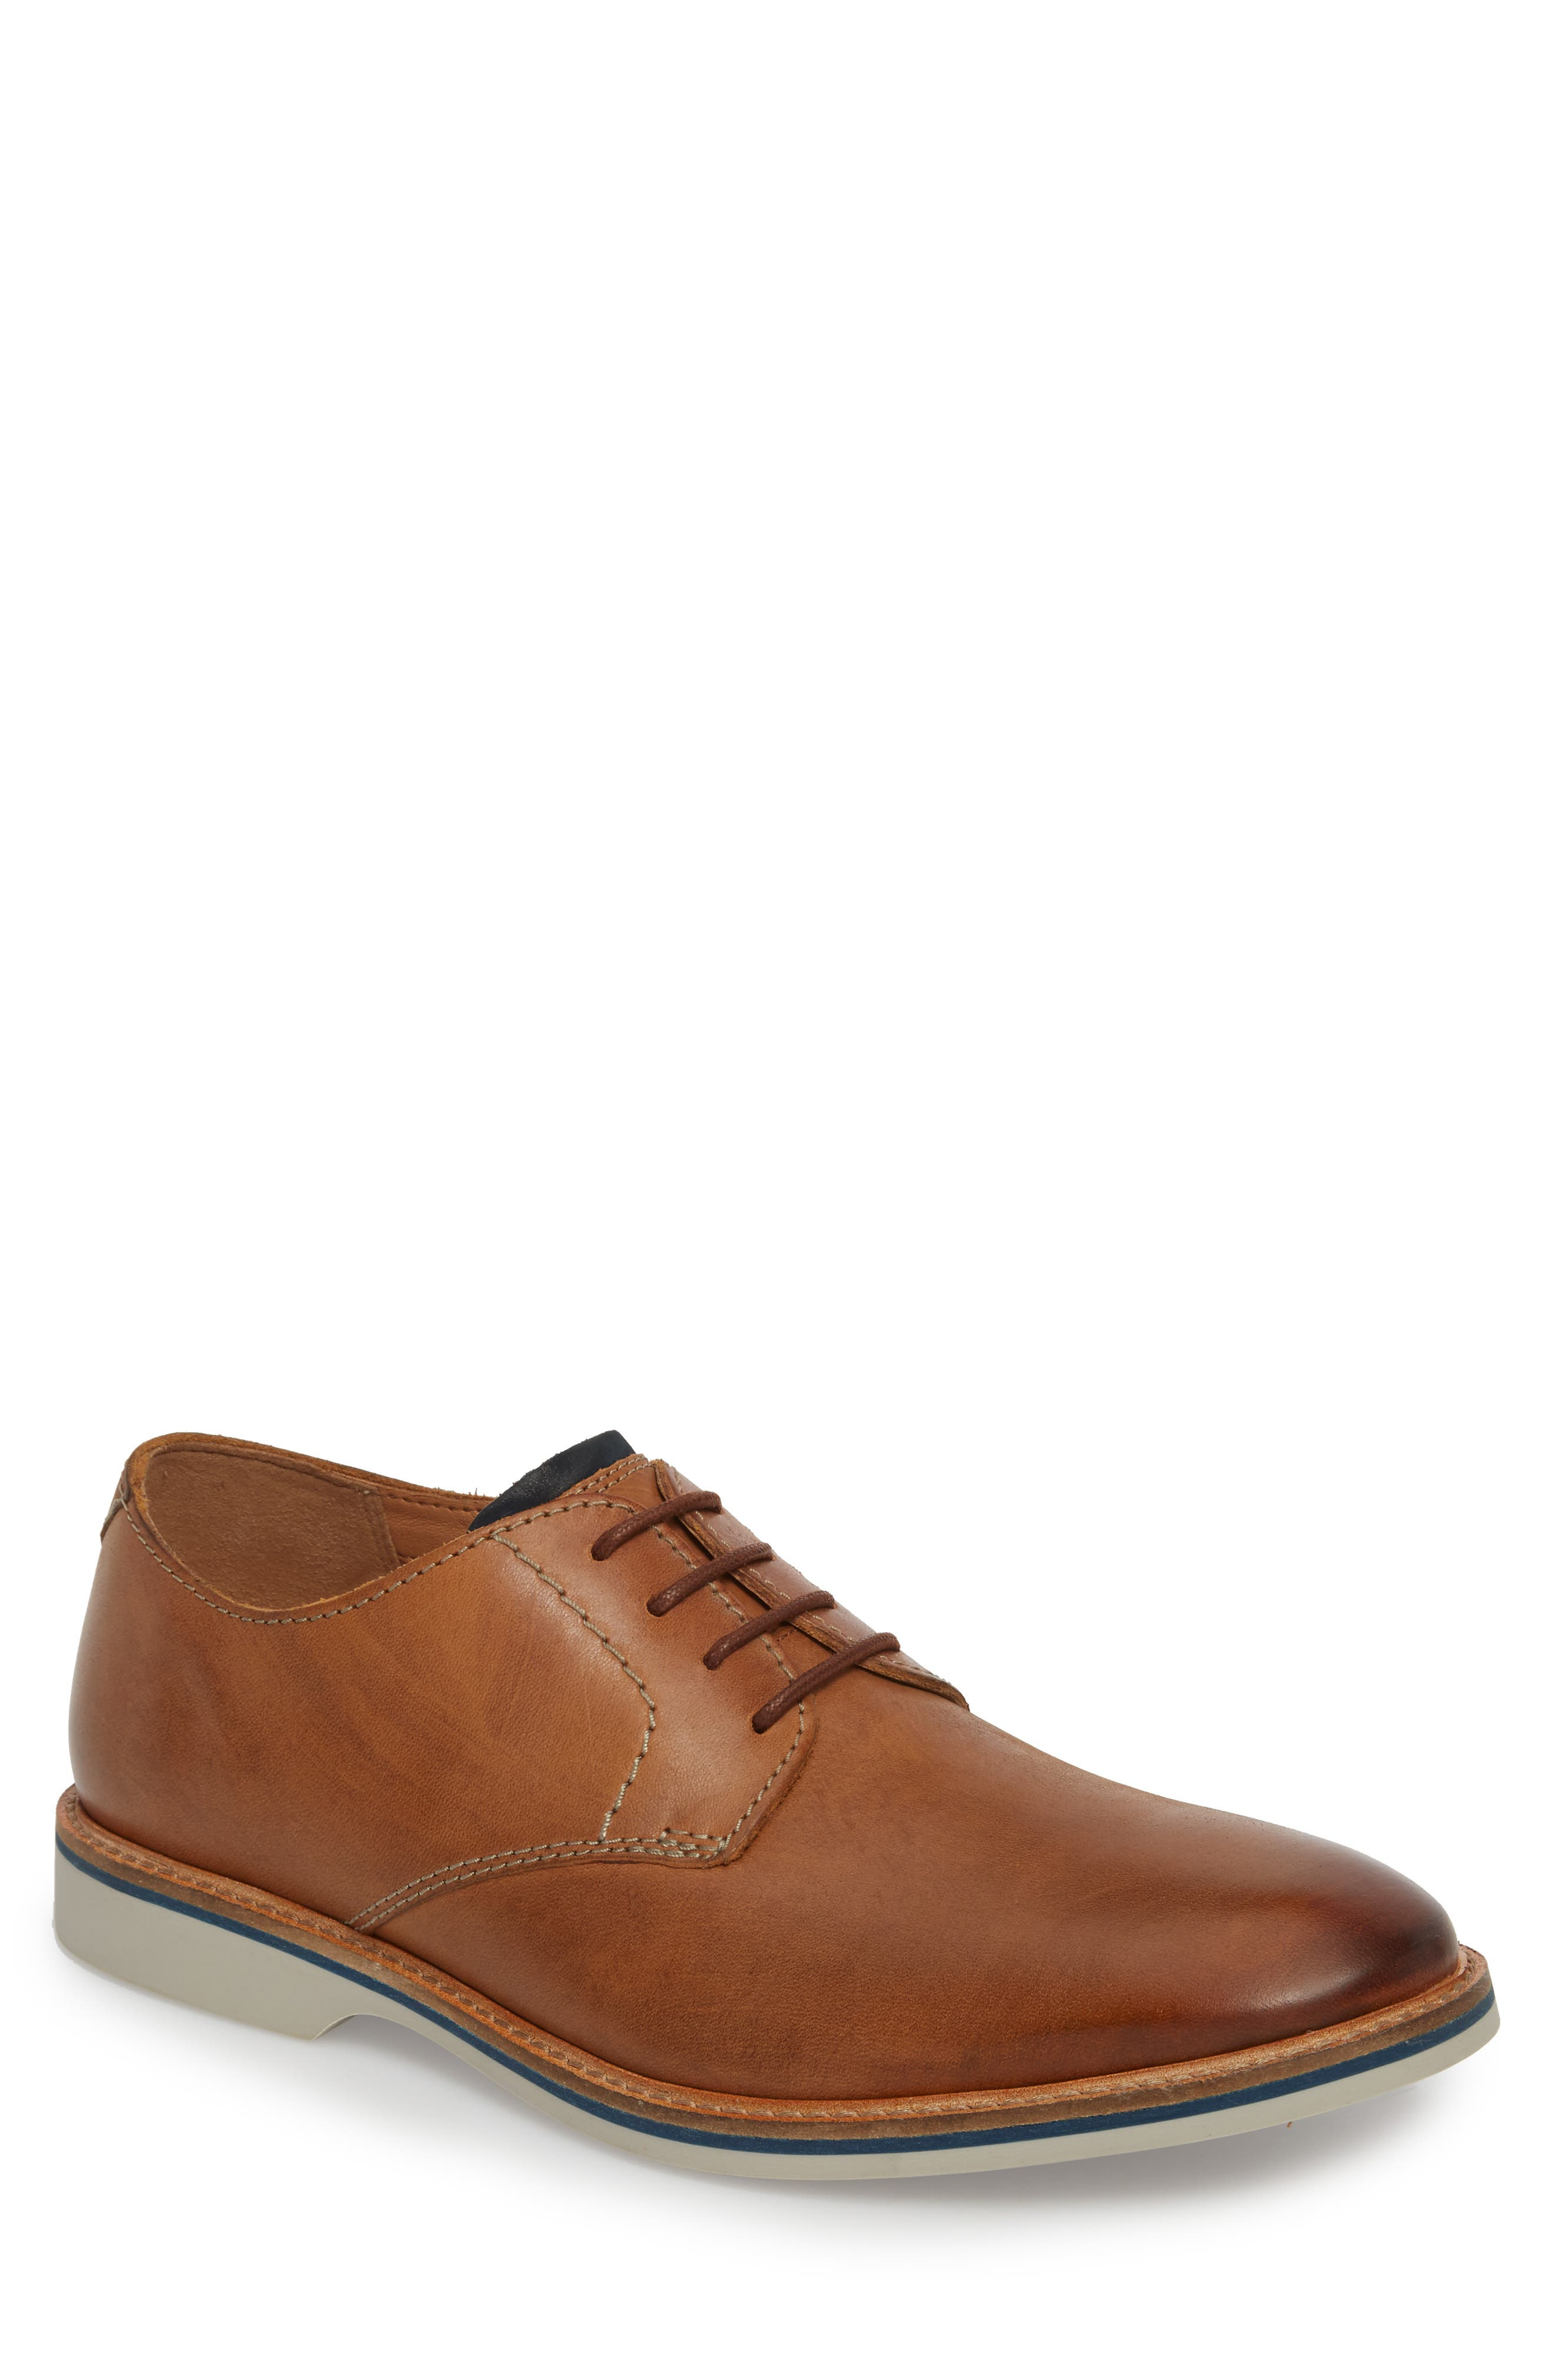 Alternate Image 1 Selected - Clarks® Atticus Plain Toe Derby (Men)